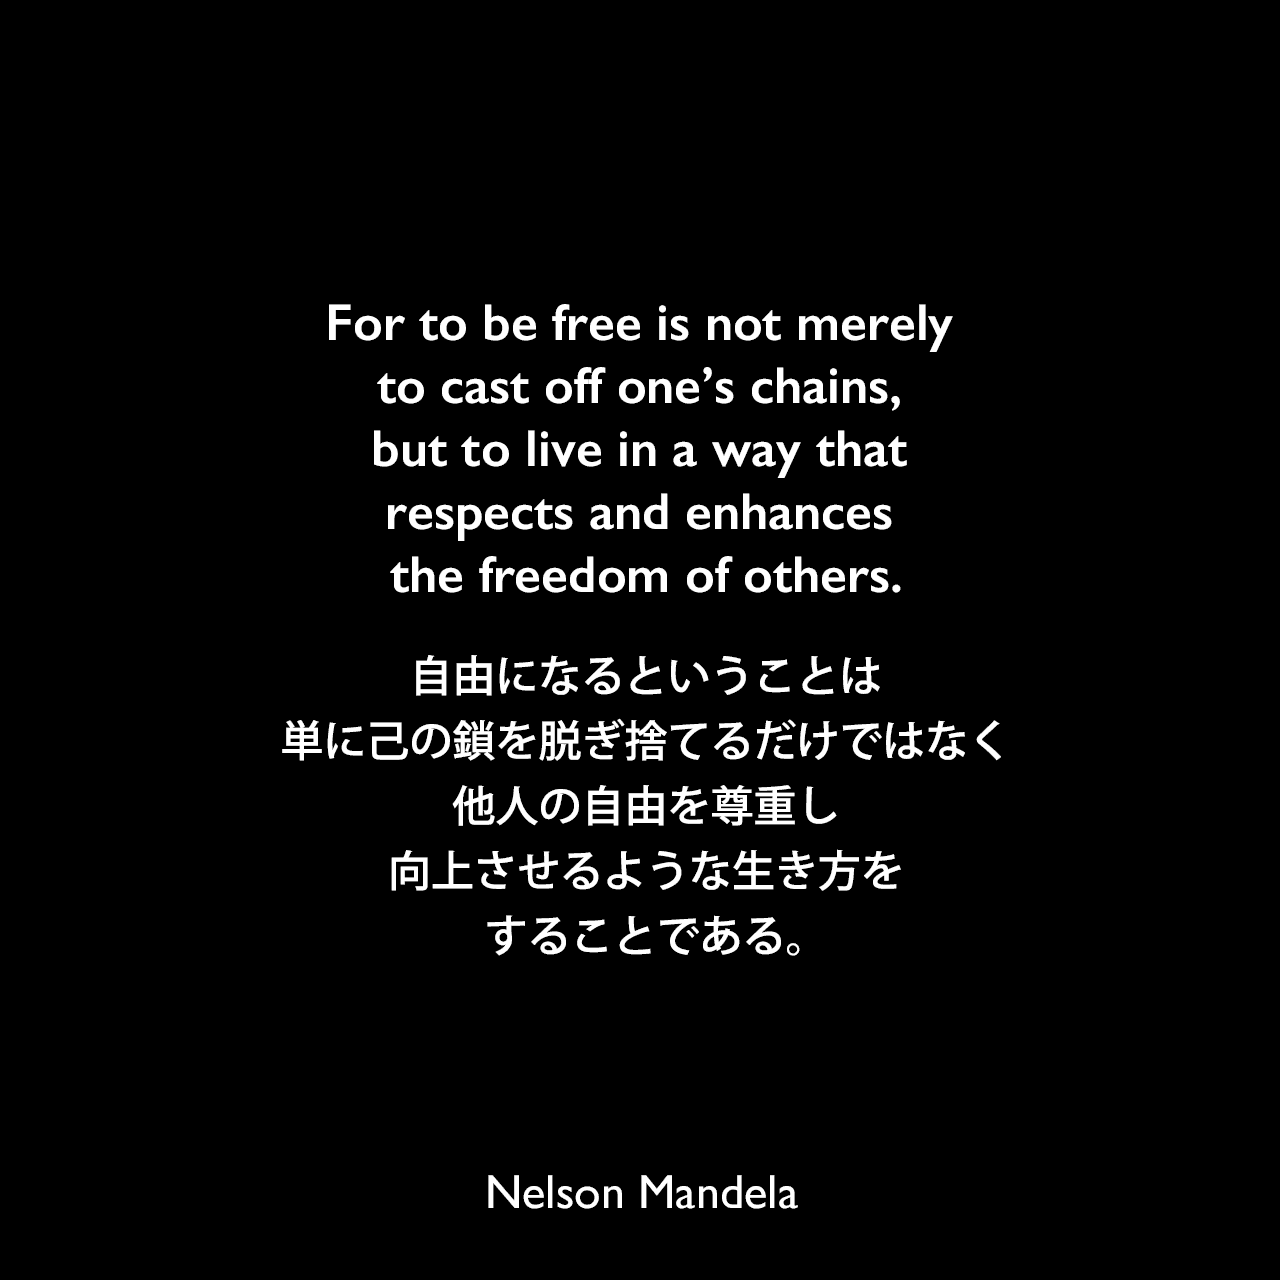 For to be free is not merely to cast off one's chains, but to live in a way that respects and enhances the freedom of others.自由になるということは、単に己の鎖を脱ぎ捨てるだけではなく、他人の自由を尊重し、向上させるような生き方をすることである。- ネルソン・マンデラによる本「自由への長い道 ネルソン・マンデラ自伝」よりNelson Mandela